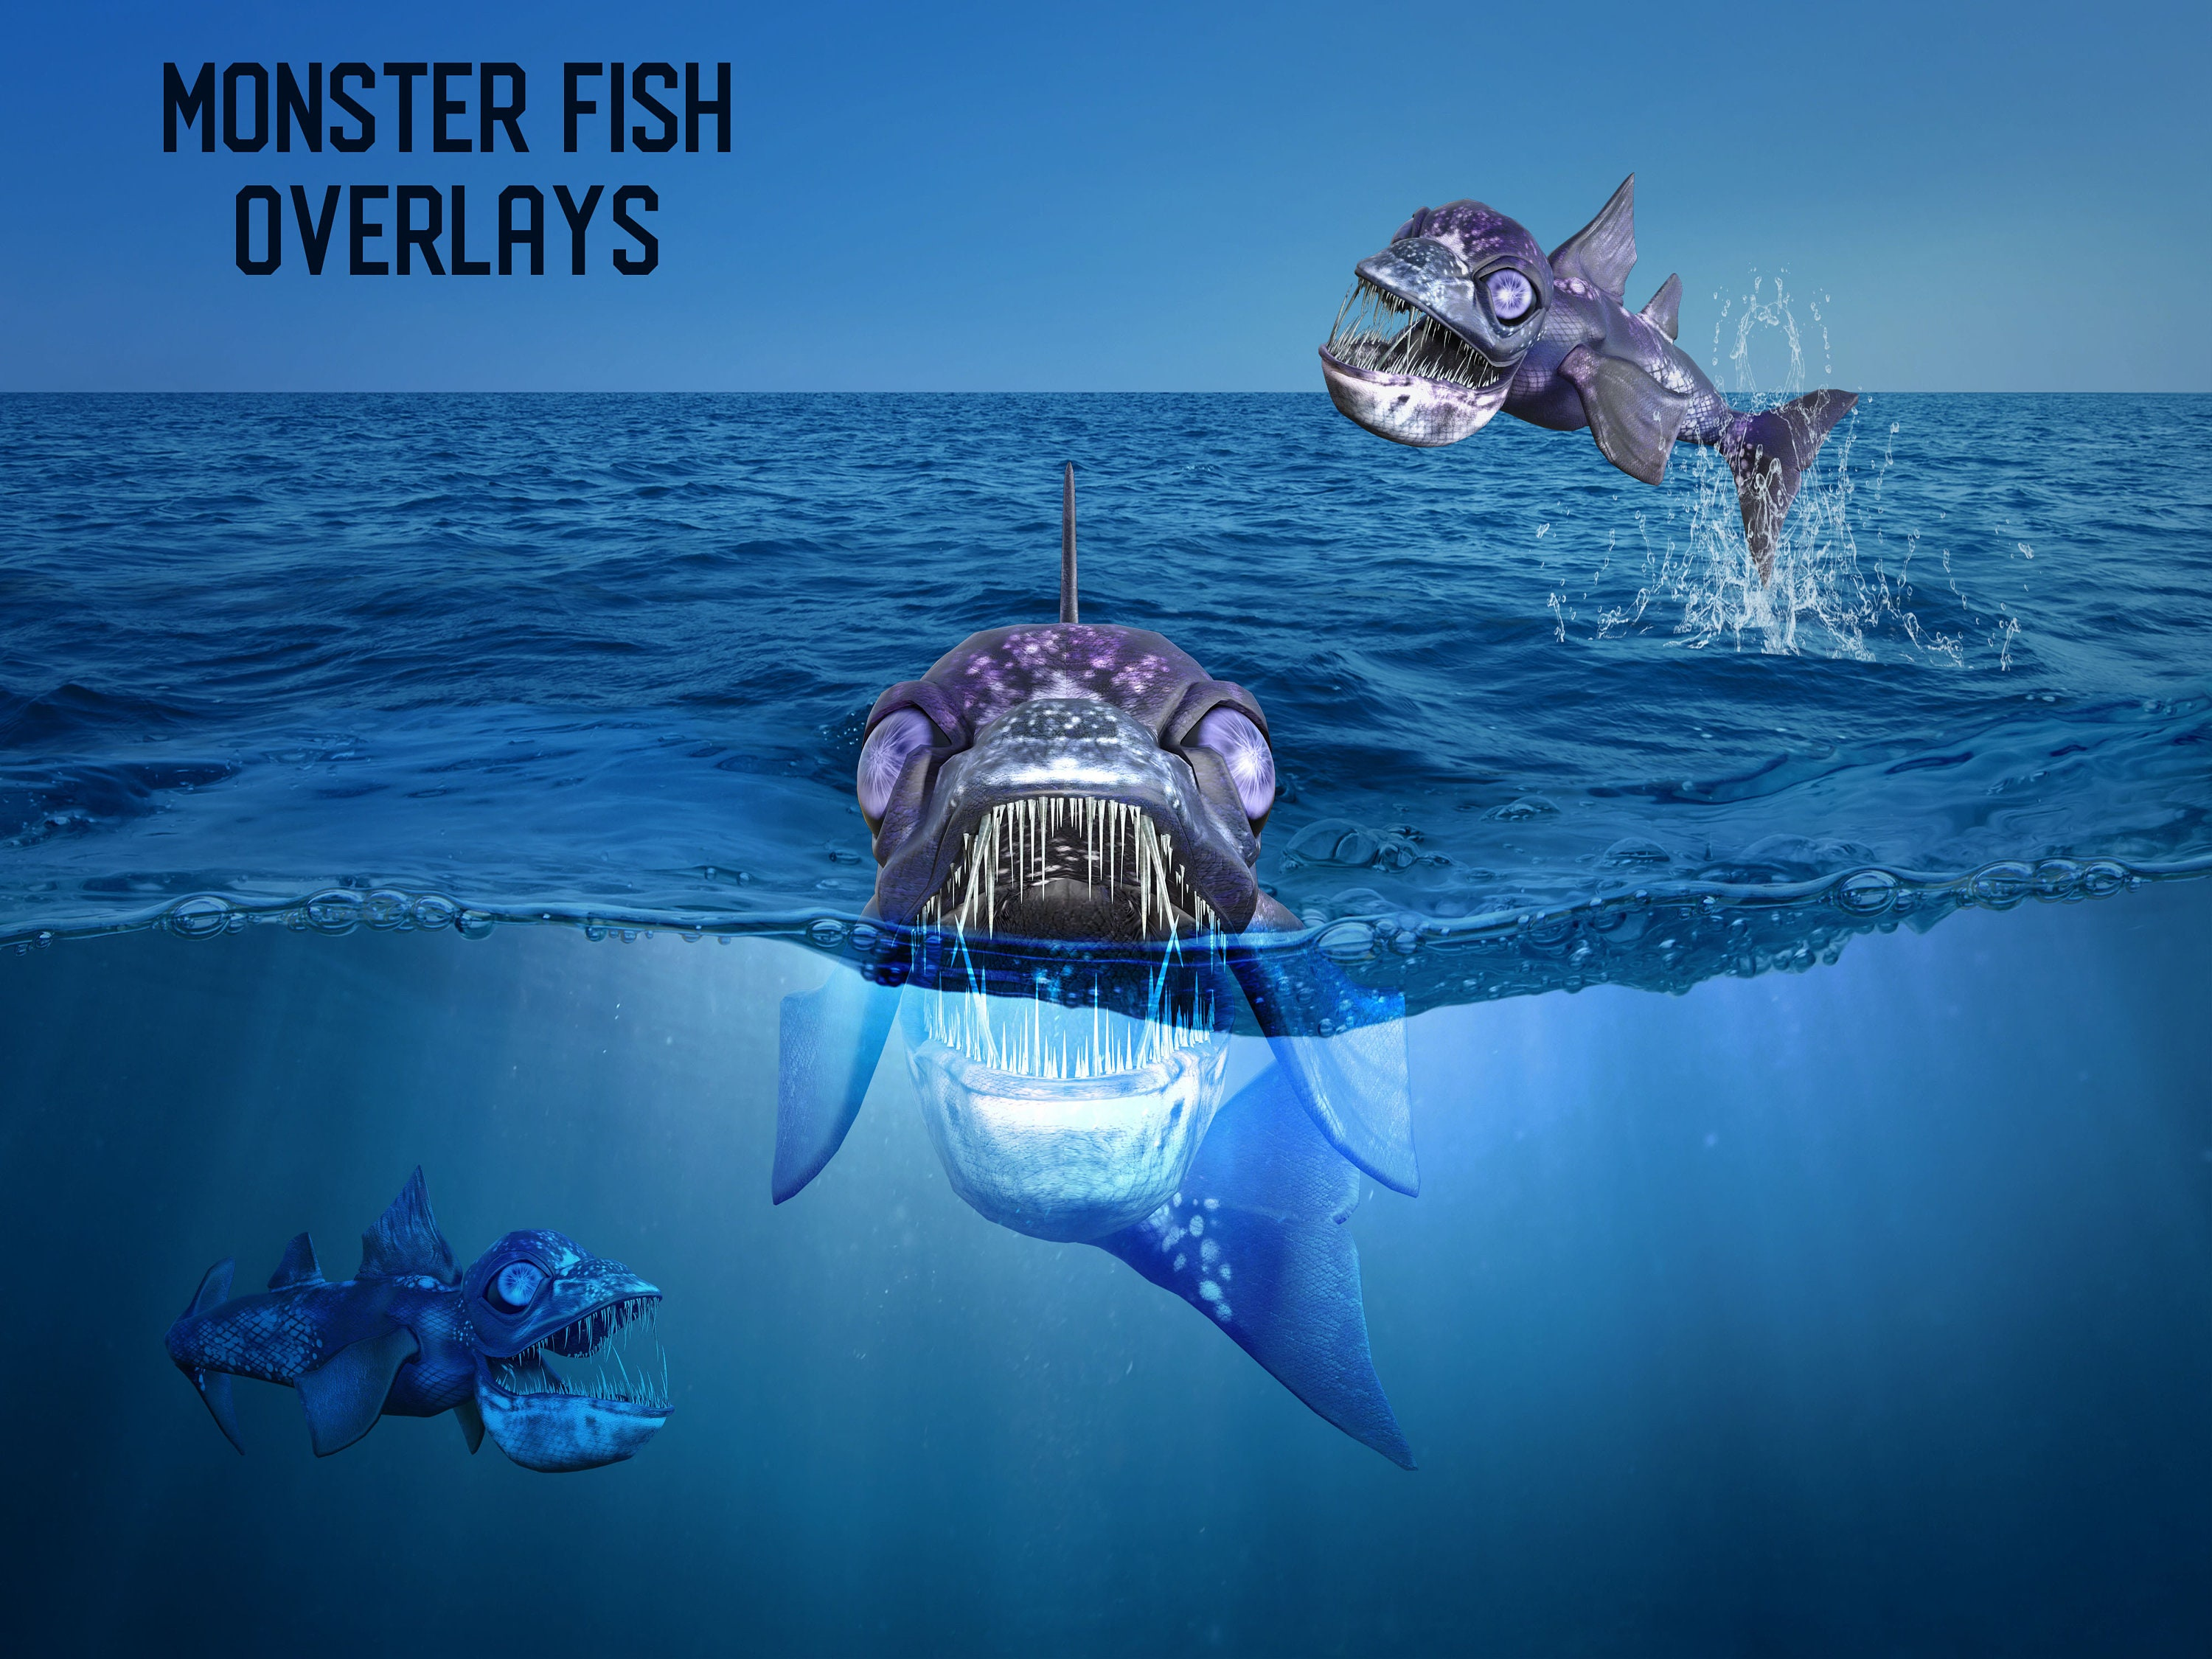 5 Monster Fish Overlays Separate PNG Files High Resolution